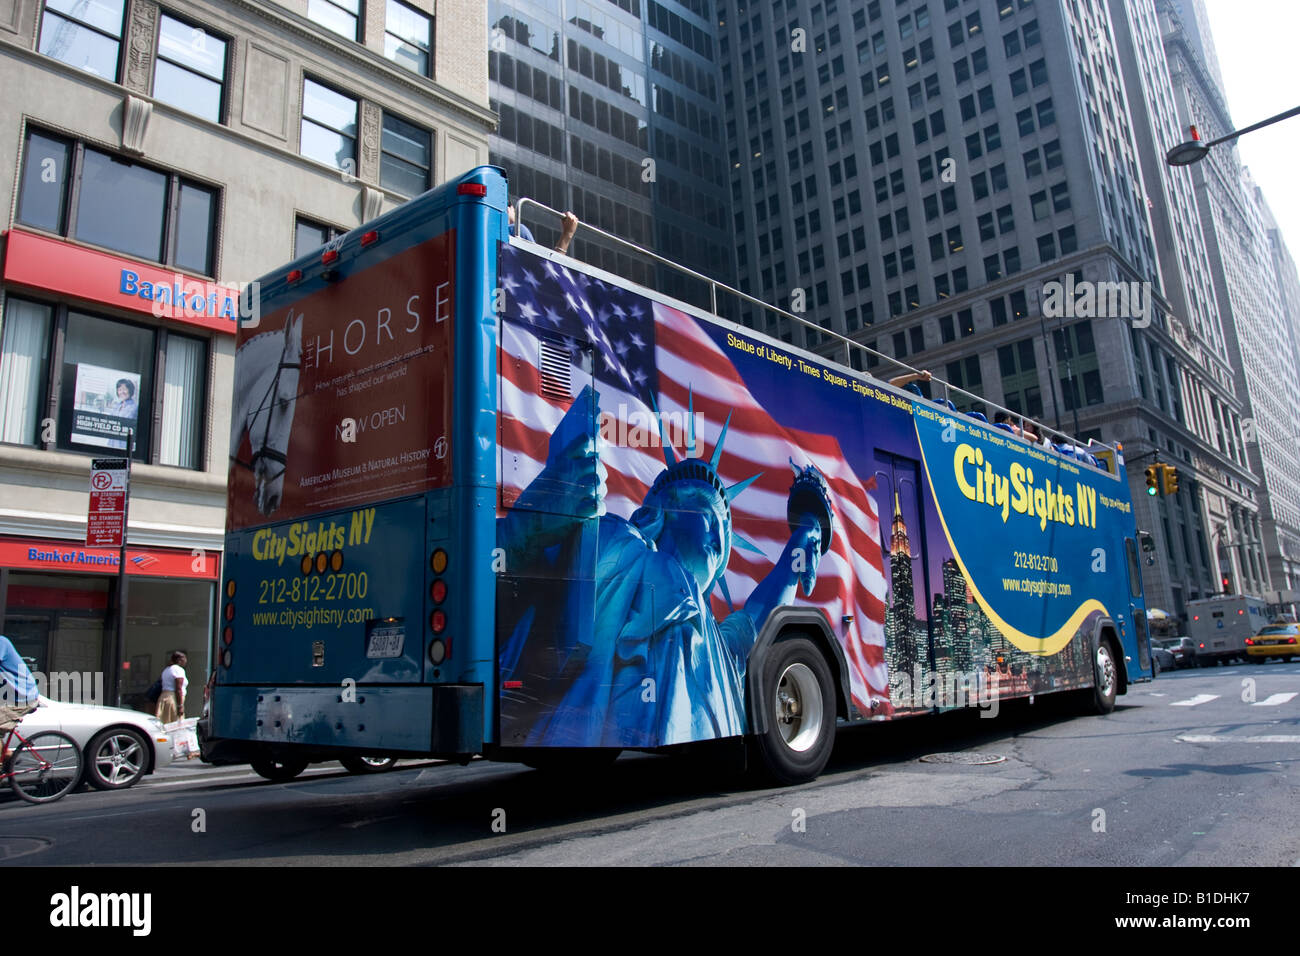 A City Sights tour bus in downtown NY - Stock Image